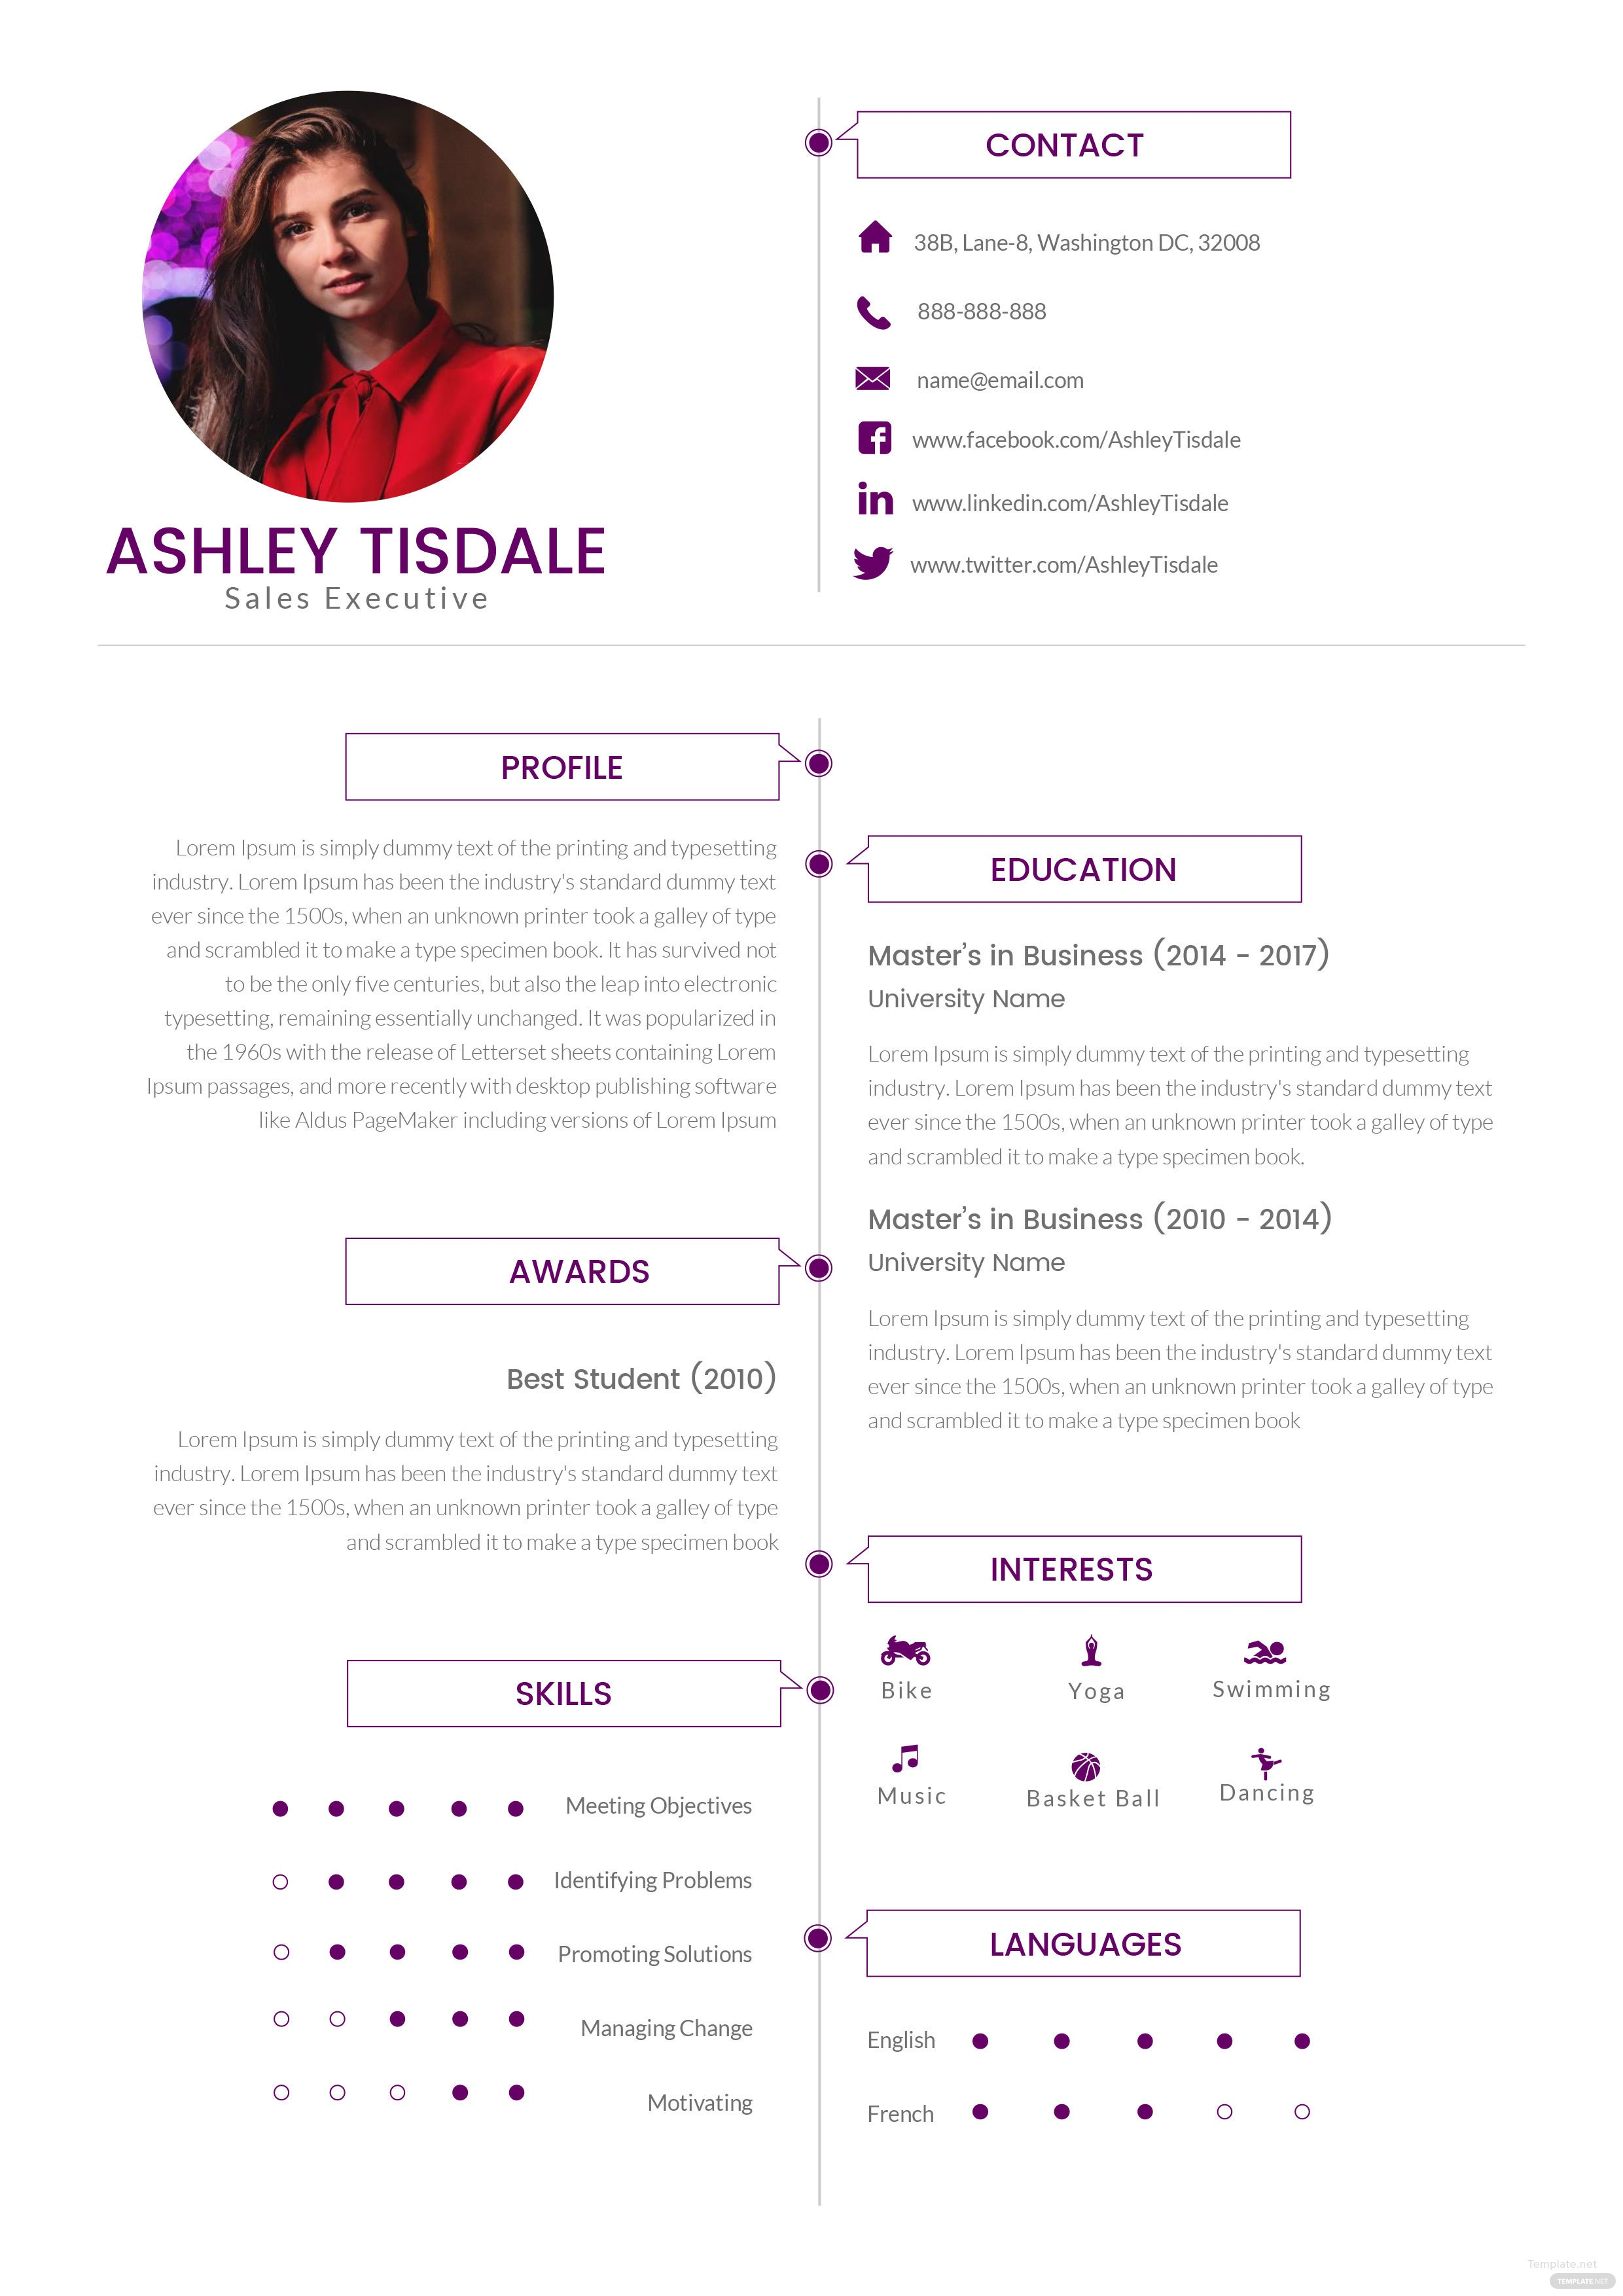 Free Mba Sales Executive Resume Template In Adobe Photoshop